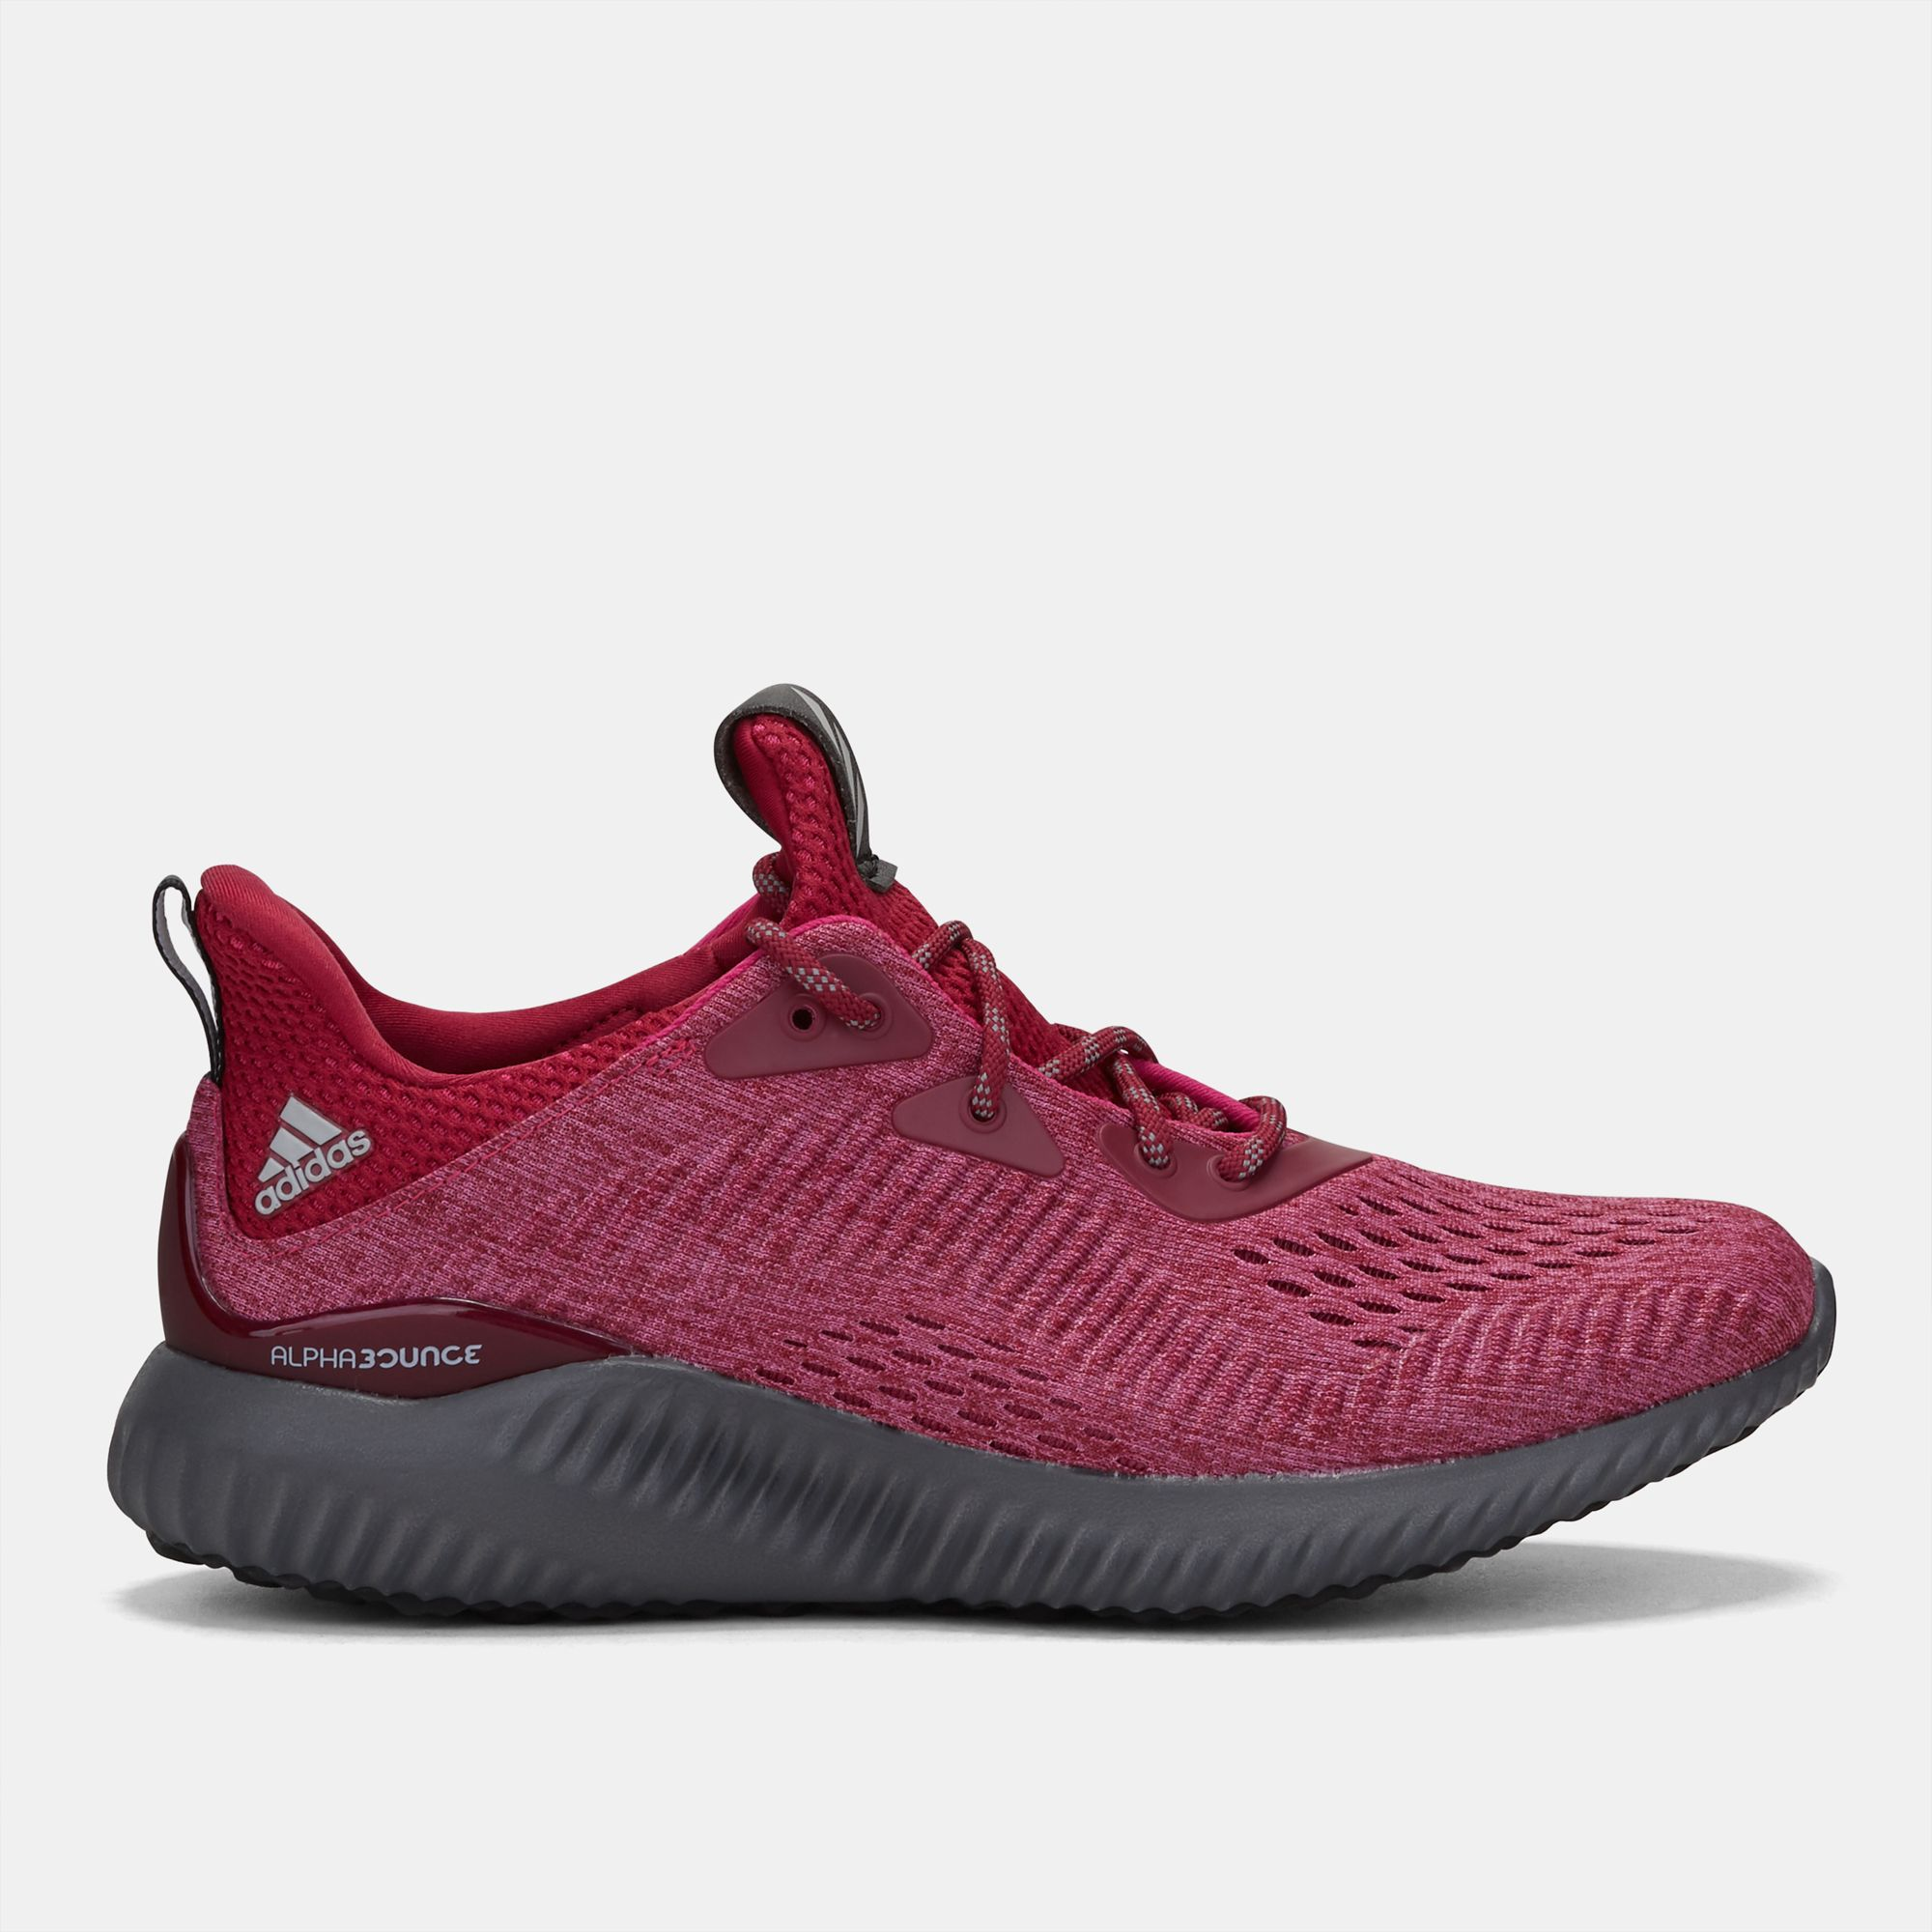 34f726913 Shop adidas Alphabounce Engineered Mesh Shoe for Womens by adidas - 1